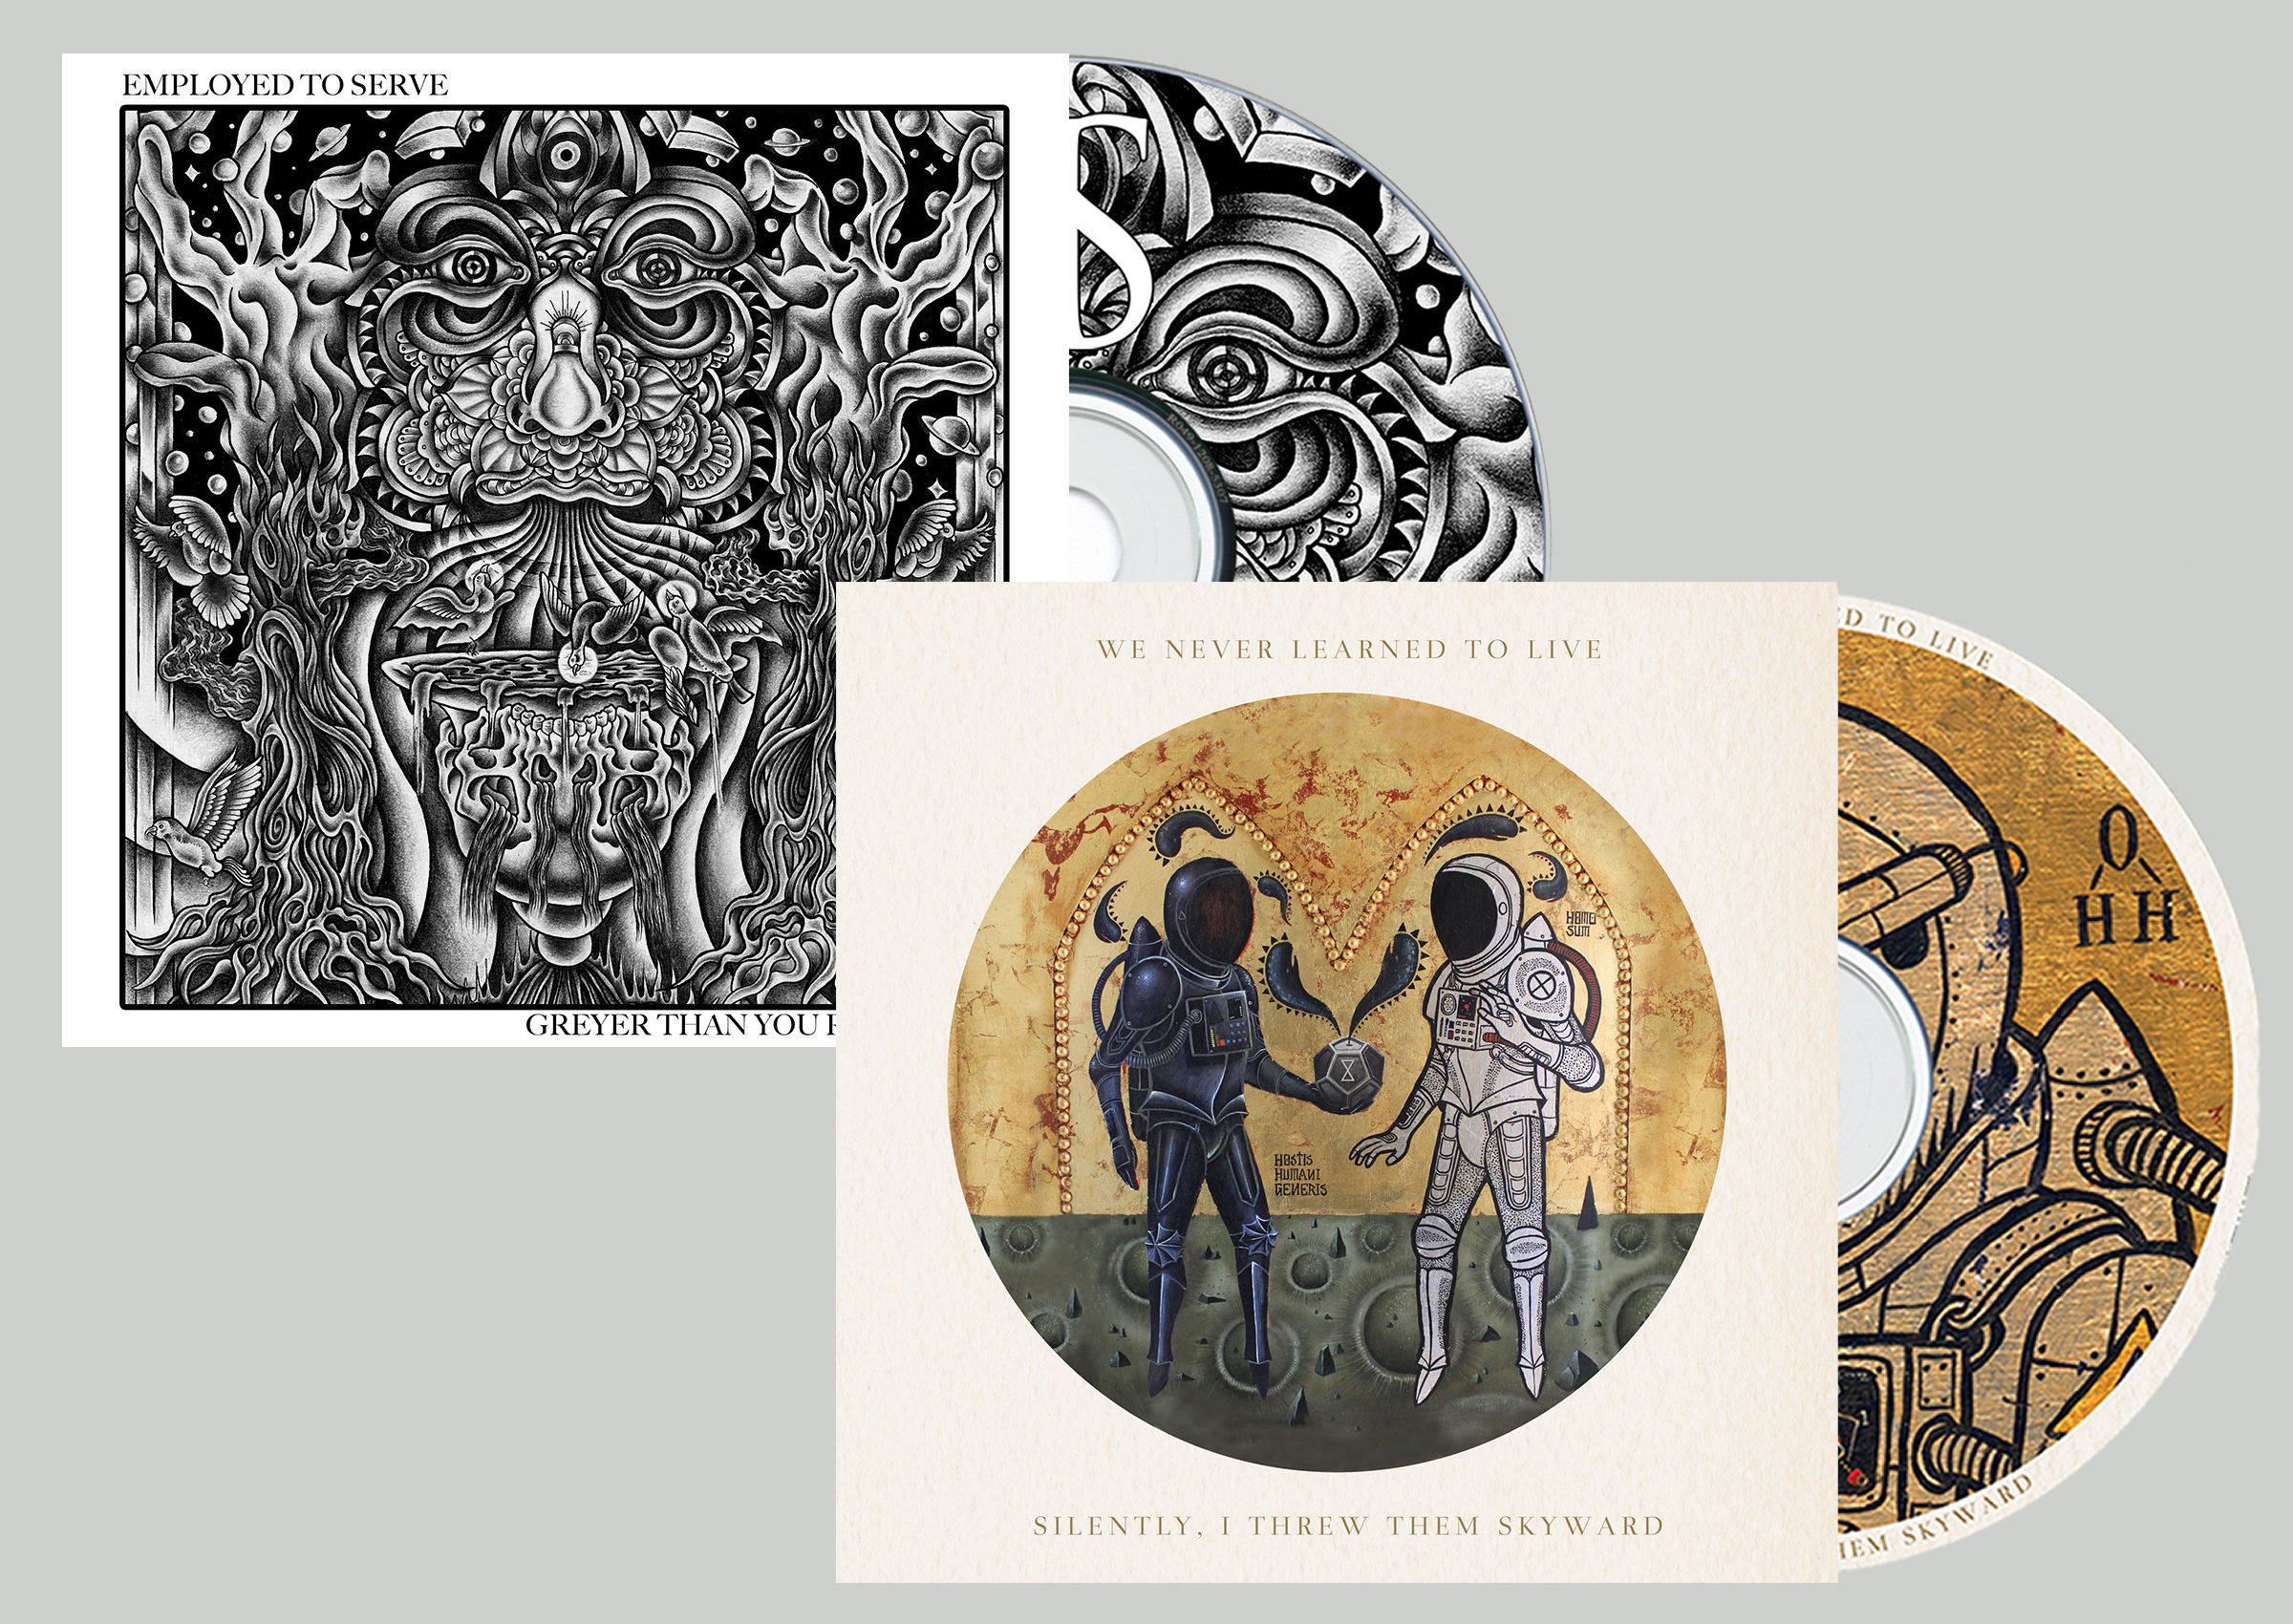 We Never Learned To Live ' Silently, I ...' + Employed To Serve 'Greyer Than...' CD bundle